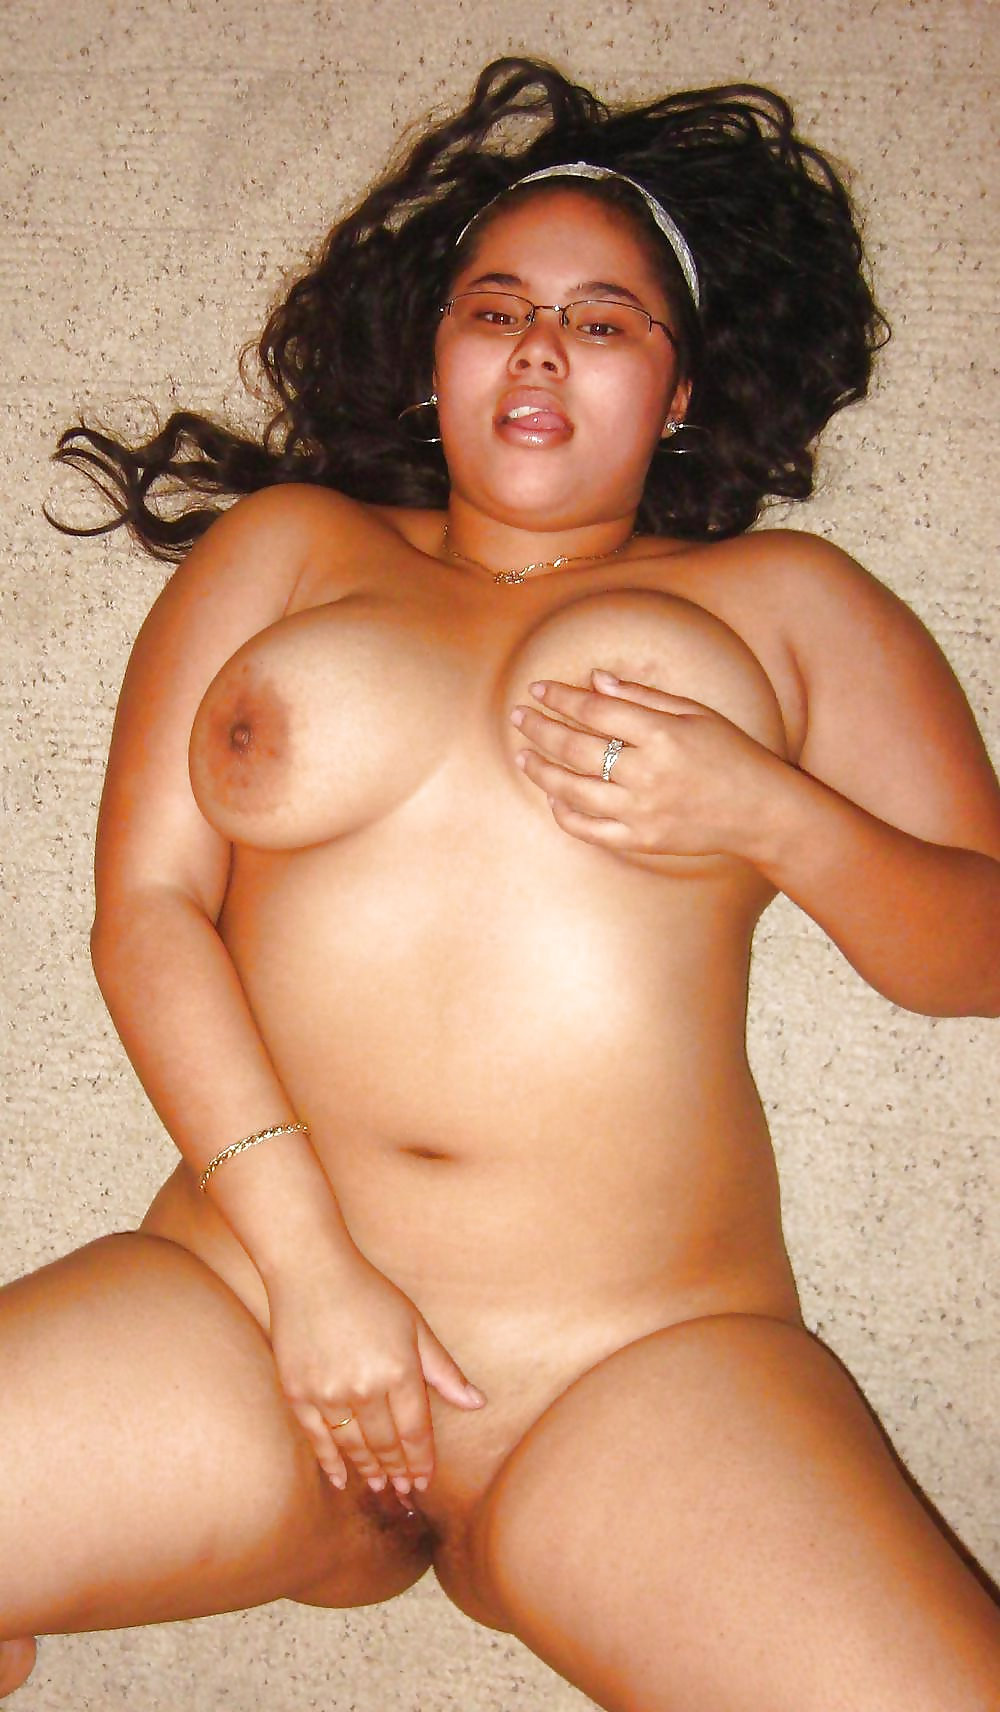 Male chubby mexican girls sex world